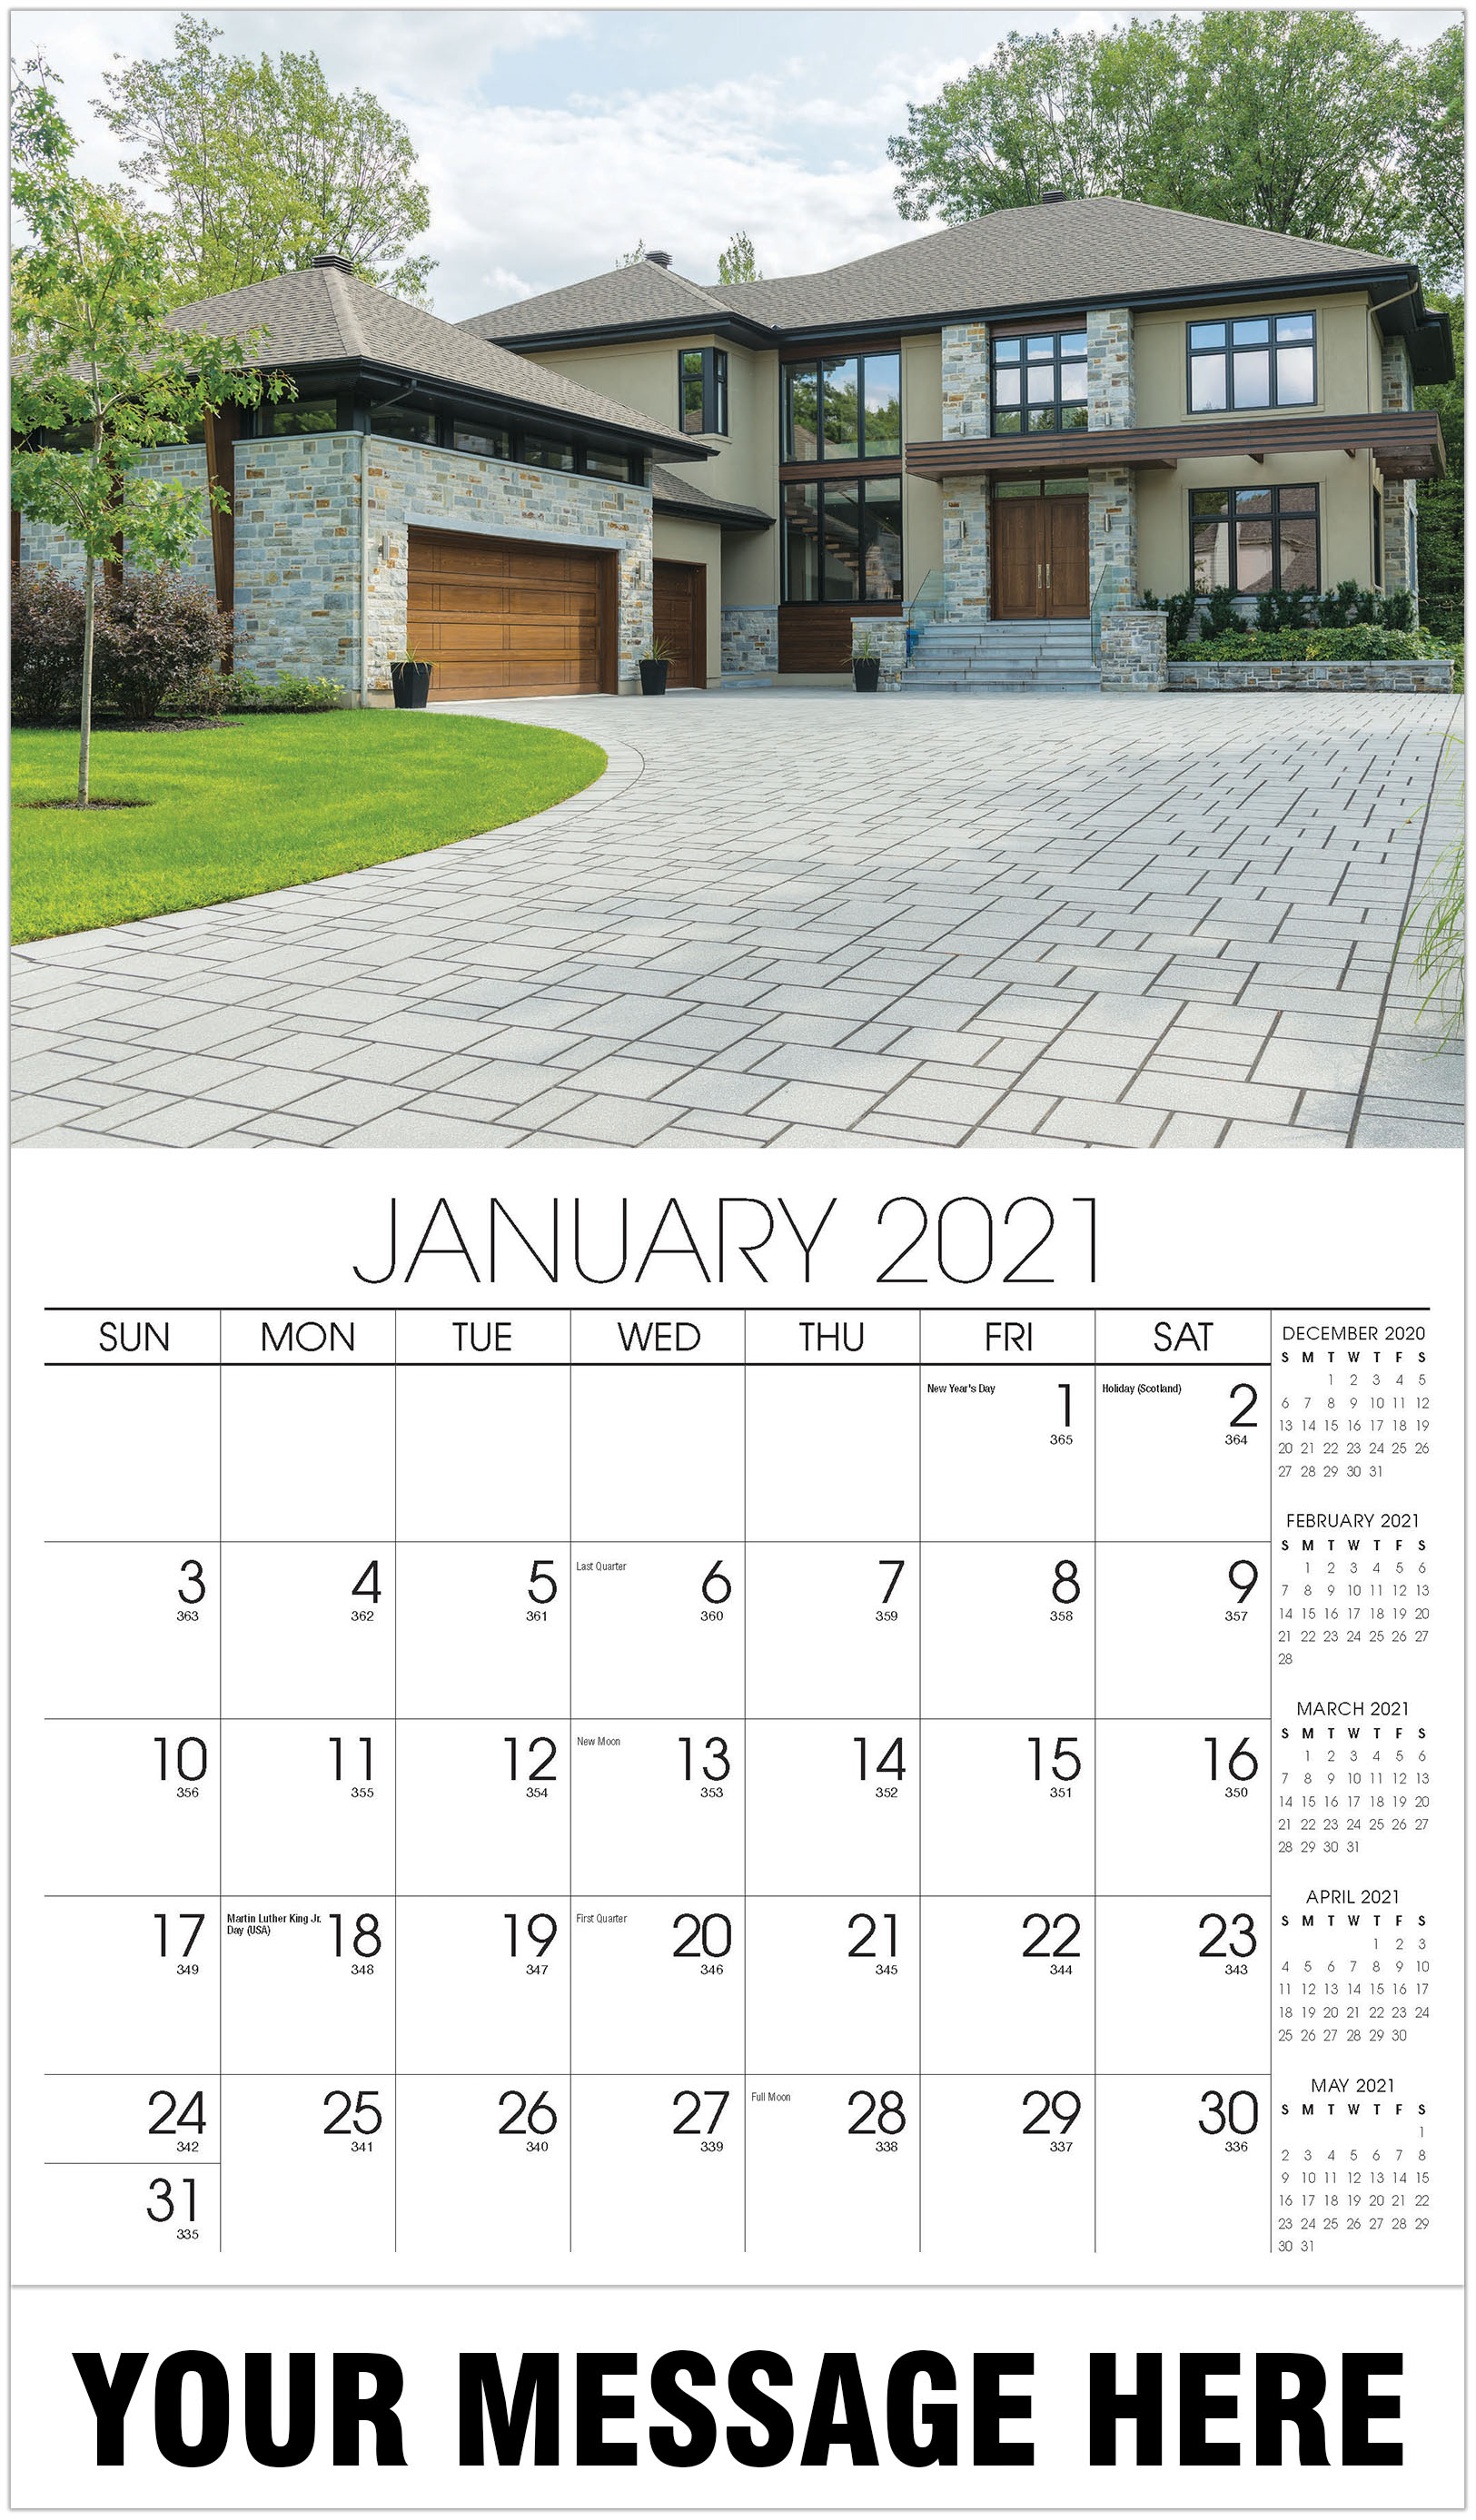 Luxury Homes Calendar - January - Homes 2021 Promotional Calendar